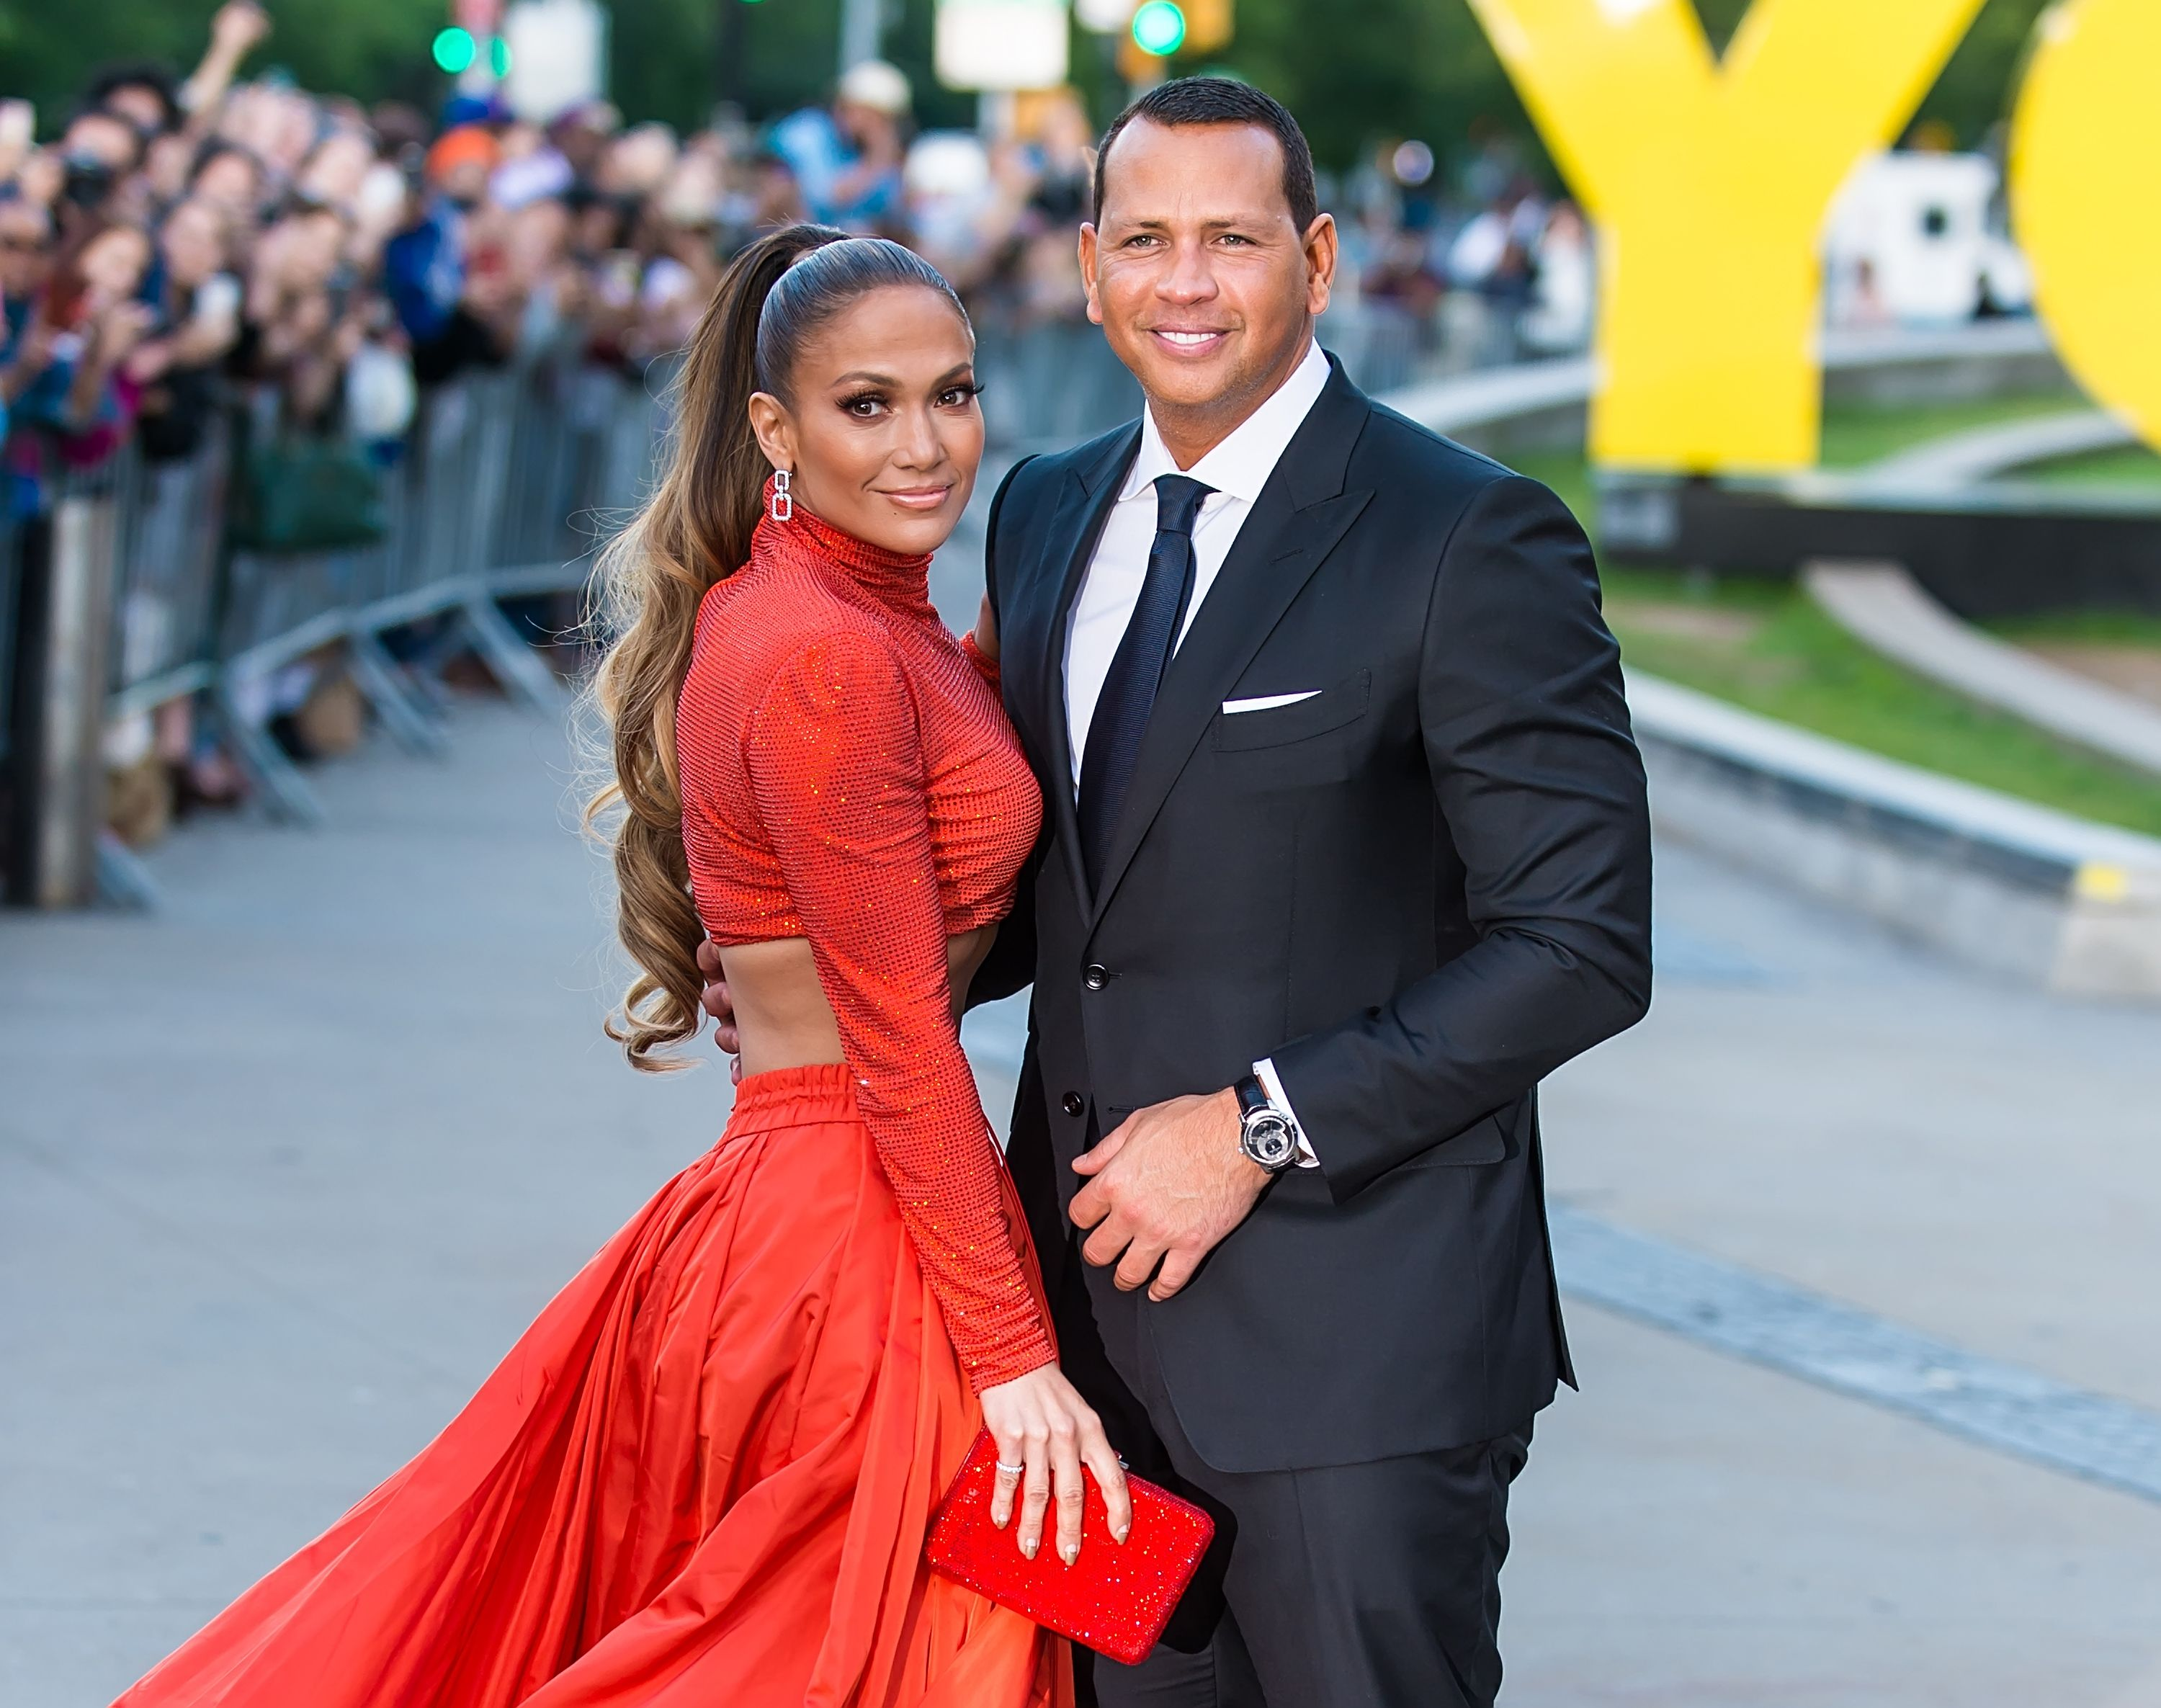 Actress Jennifer Lopez and Alex Rodriguez are seen at the 2019 CFDA Fashion Awards on June 3, 2019 | Photo: Getty Images